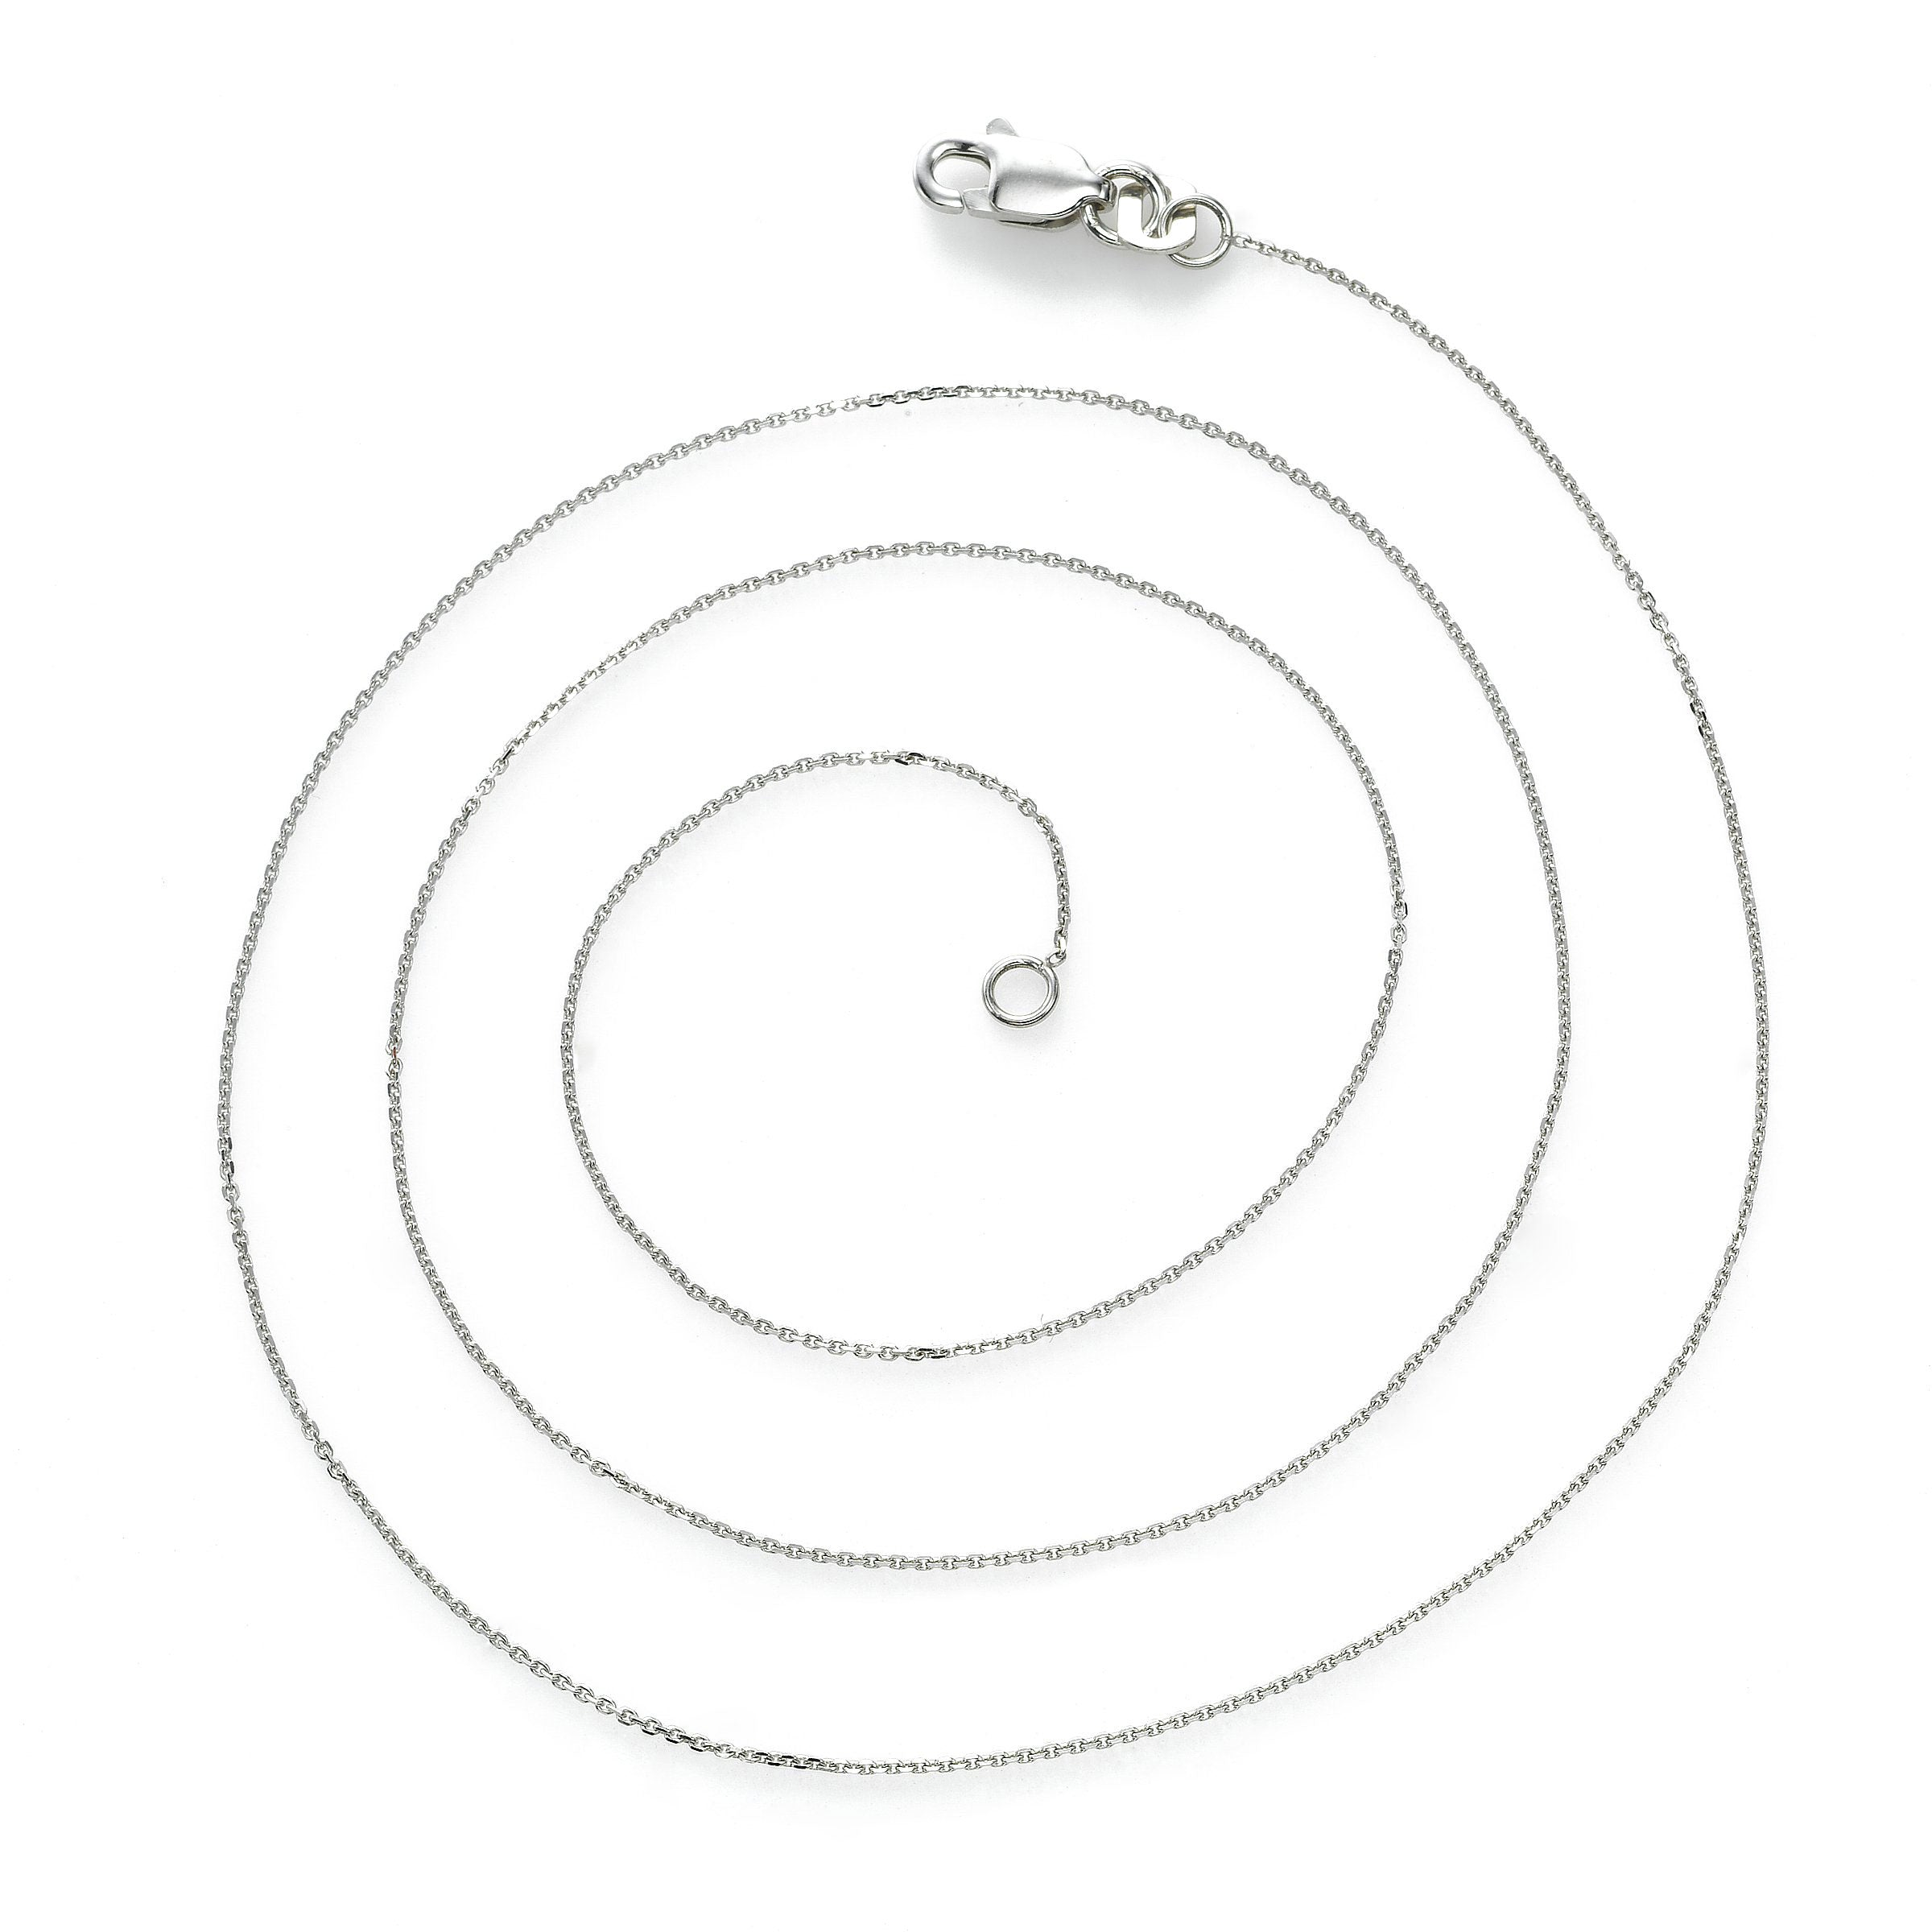 Delicate Cable Chain, 17 Inches, 14K White Gold